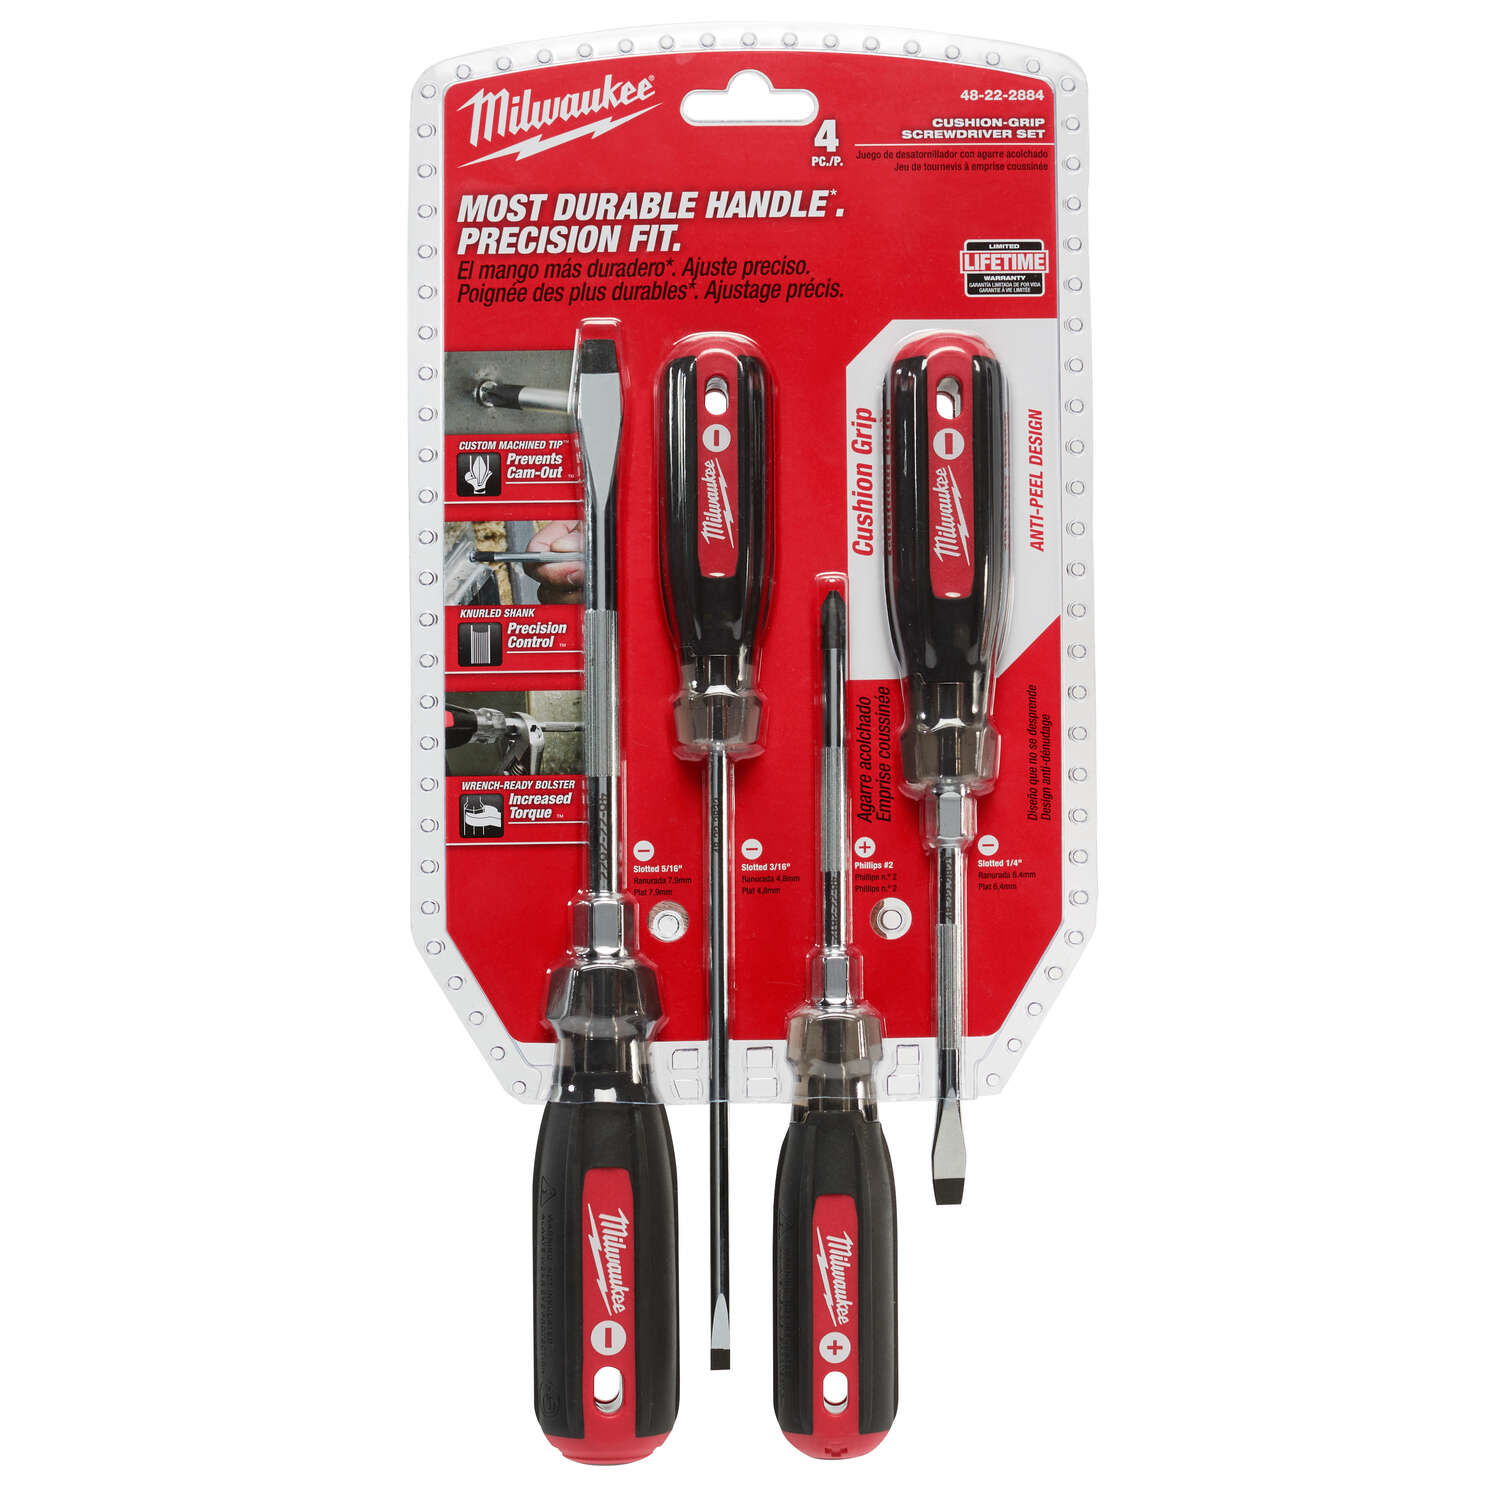 Milwaukee  4 pc. Phillips/Slotted  Cushion Grip  Screwdriver Set  Drop Forged Steel  14 in.